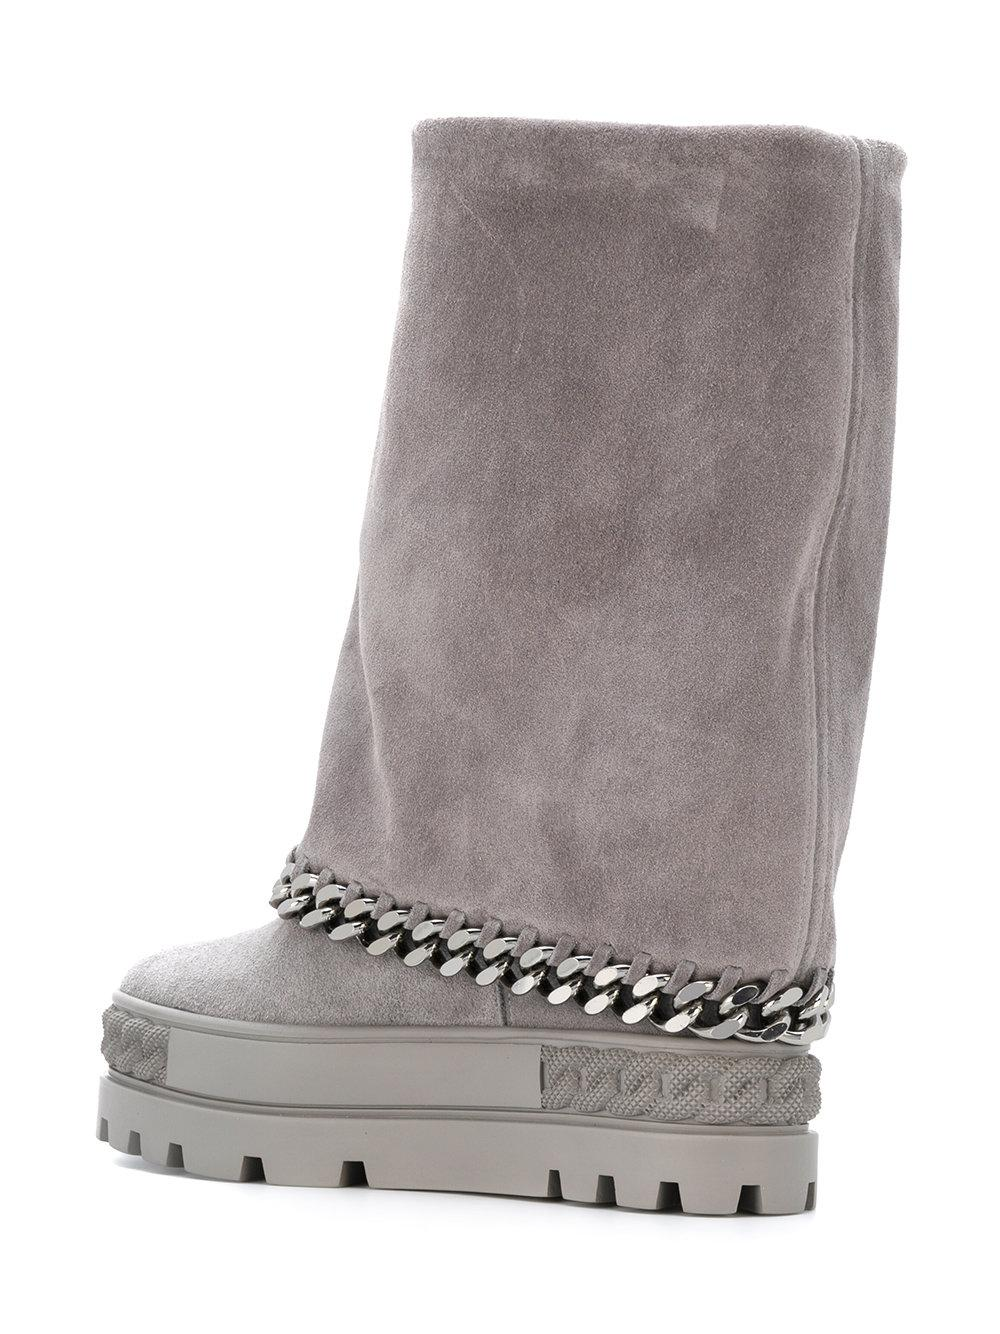 Lyst - Casadei Chain-trimmed Chaucer Boots in Gray 97e3ae05f89